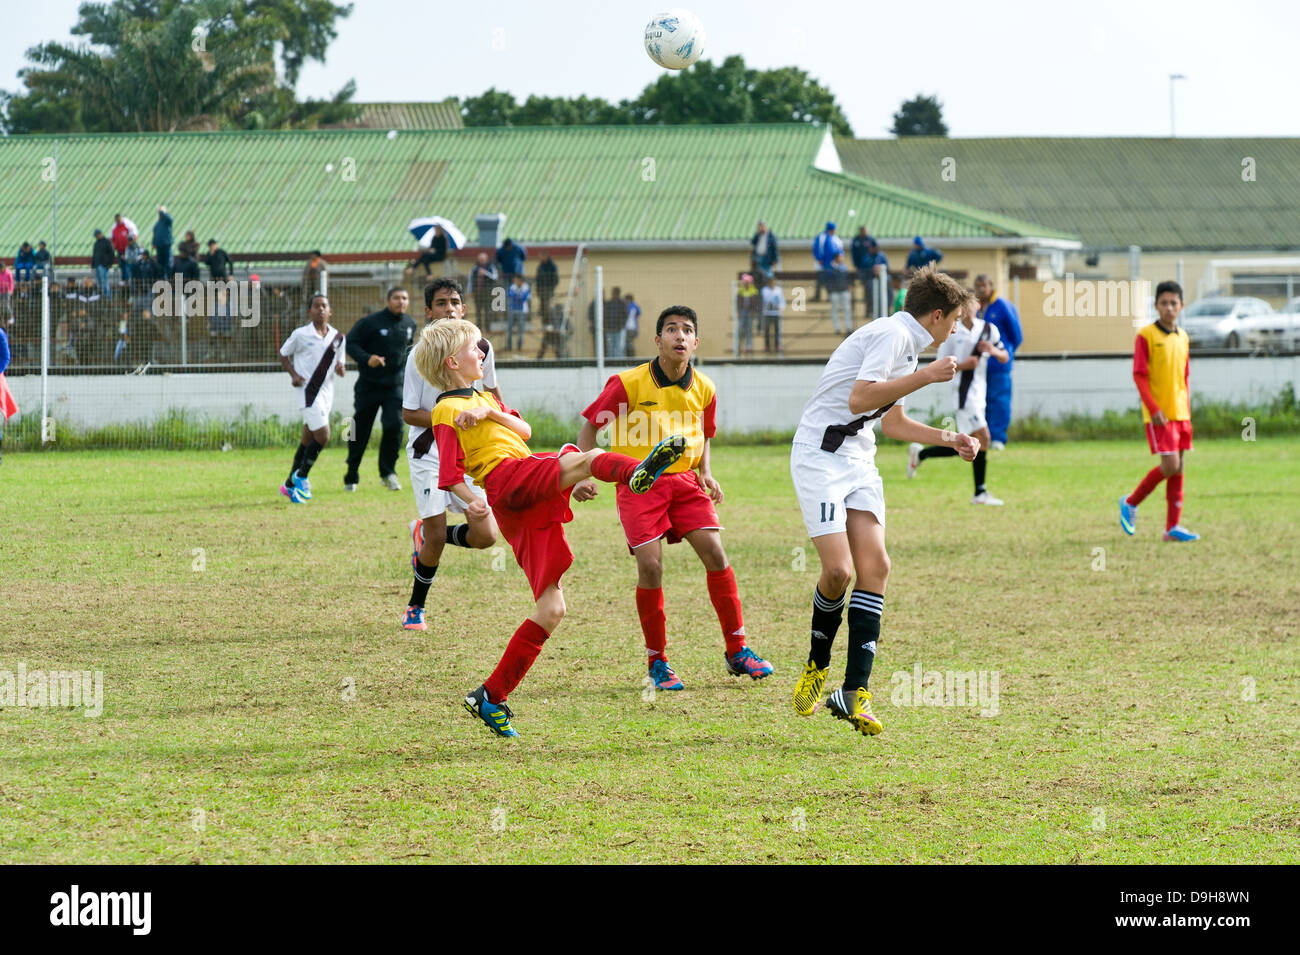 U15 Junior football teams playing a league match, Cape Town, South Africa Stock Photo